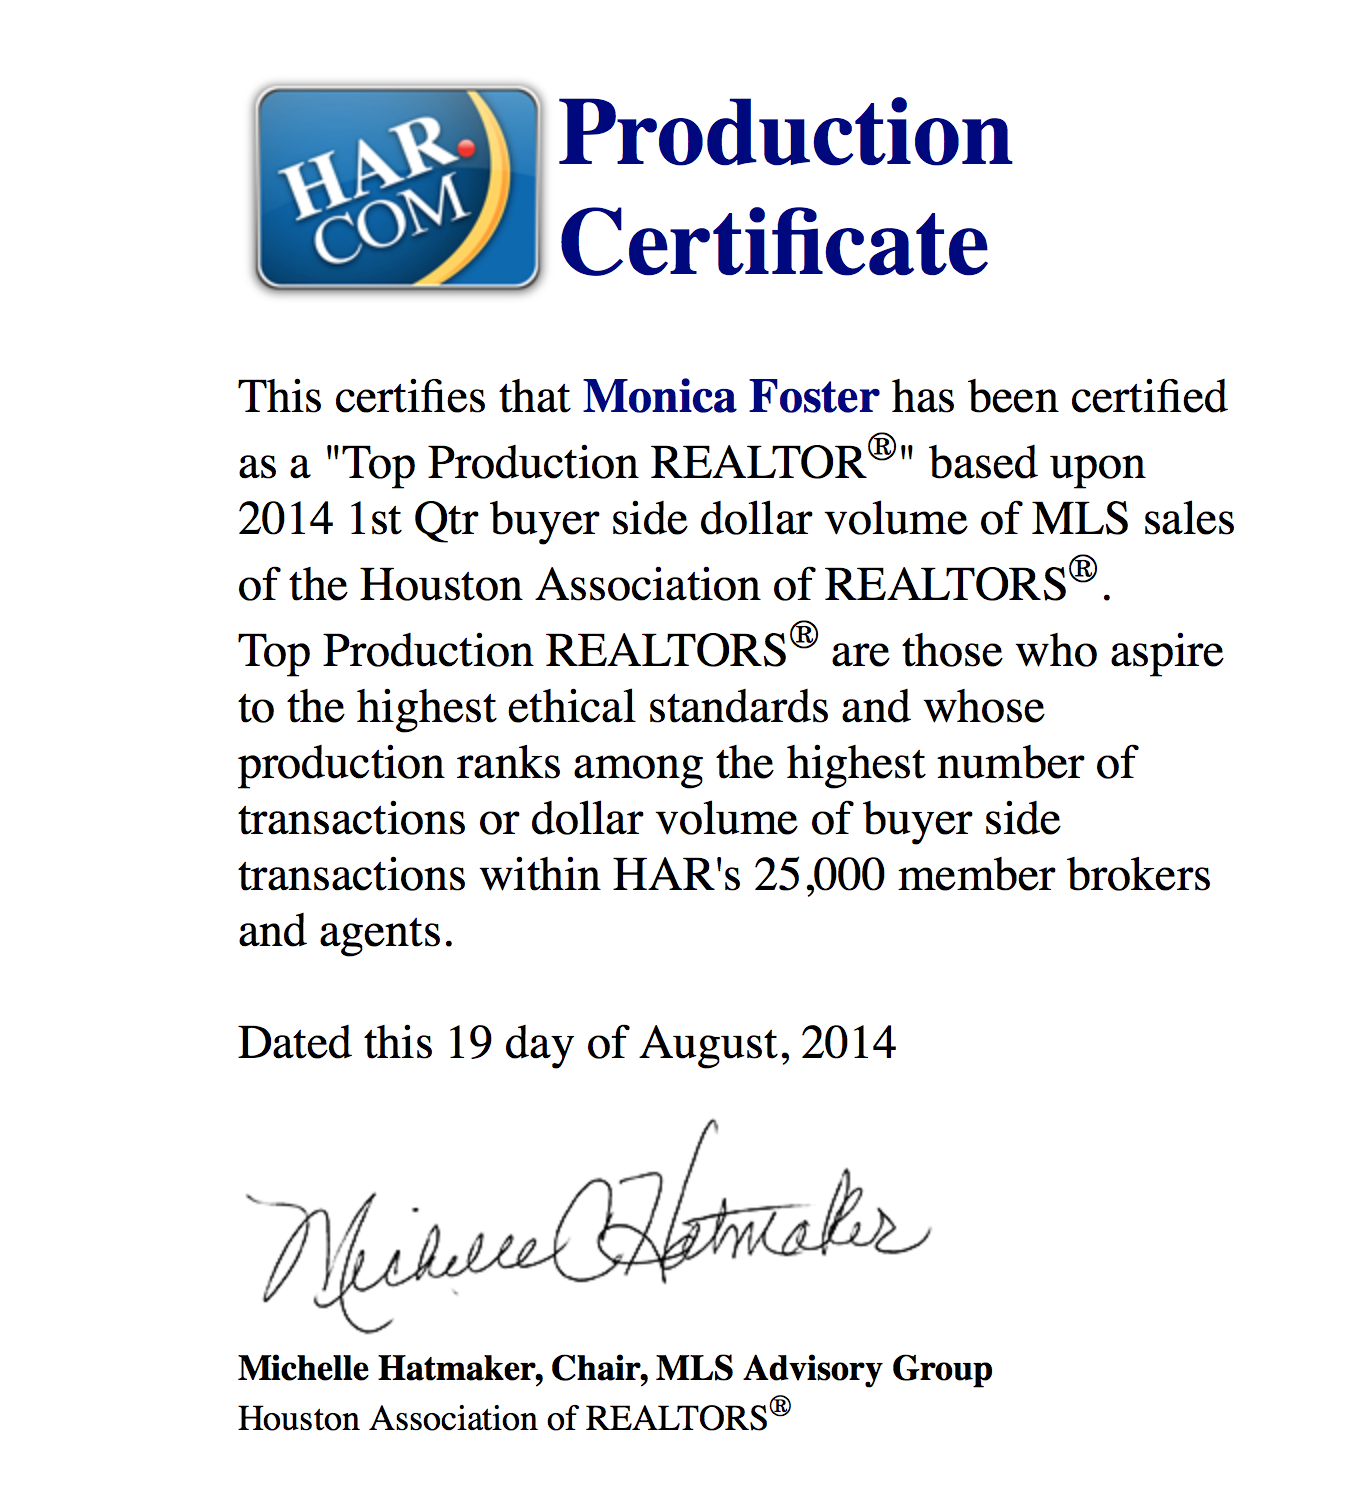 HAR Top Production 1st Qtr 2014 Buyer Volume